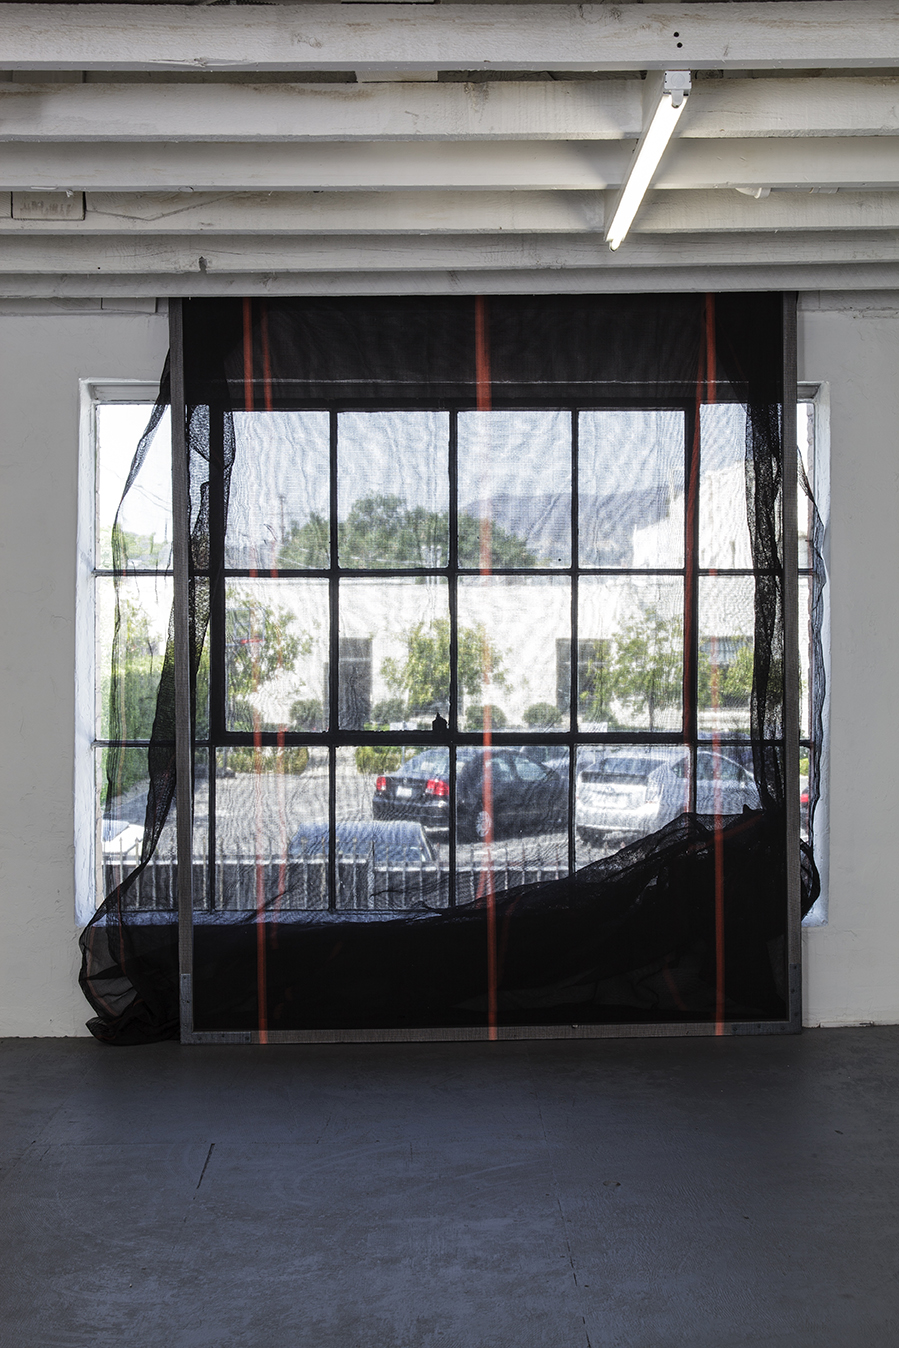 Valerie Snobeck,  They Seem Removed, Thomas Duncan, Los Angeles 2012, exhibition view